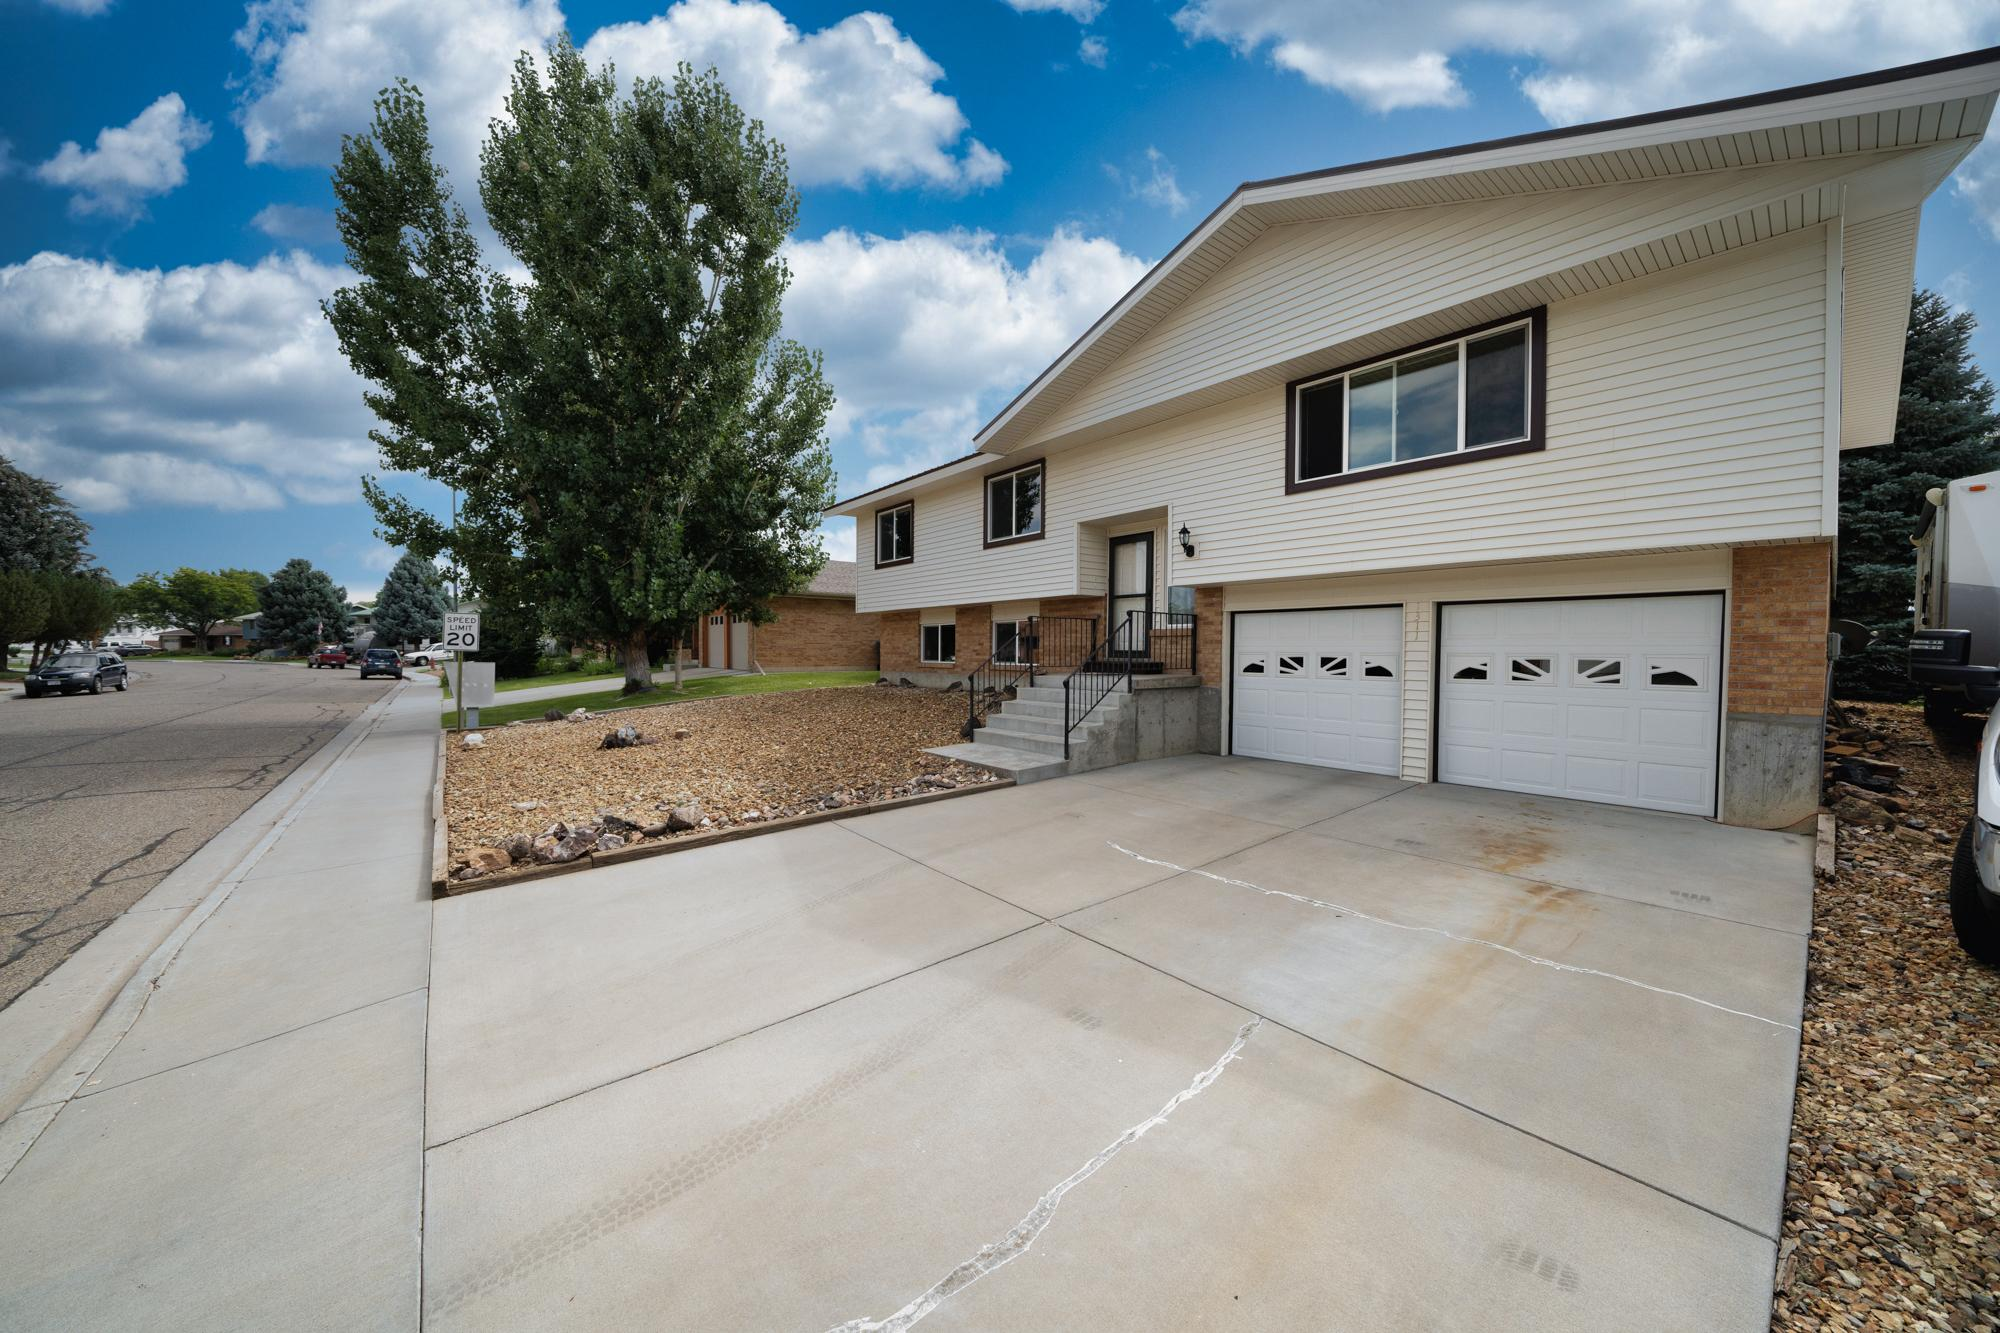 Bi-Level Home with RV Parking - 1311 Manchester Dr Montrose, CO 81401 - Atha Team Realty Agents